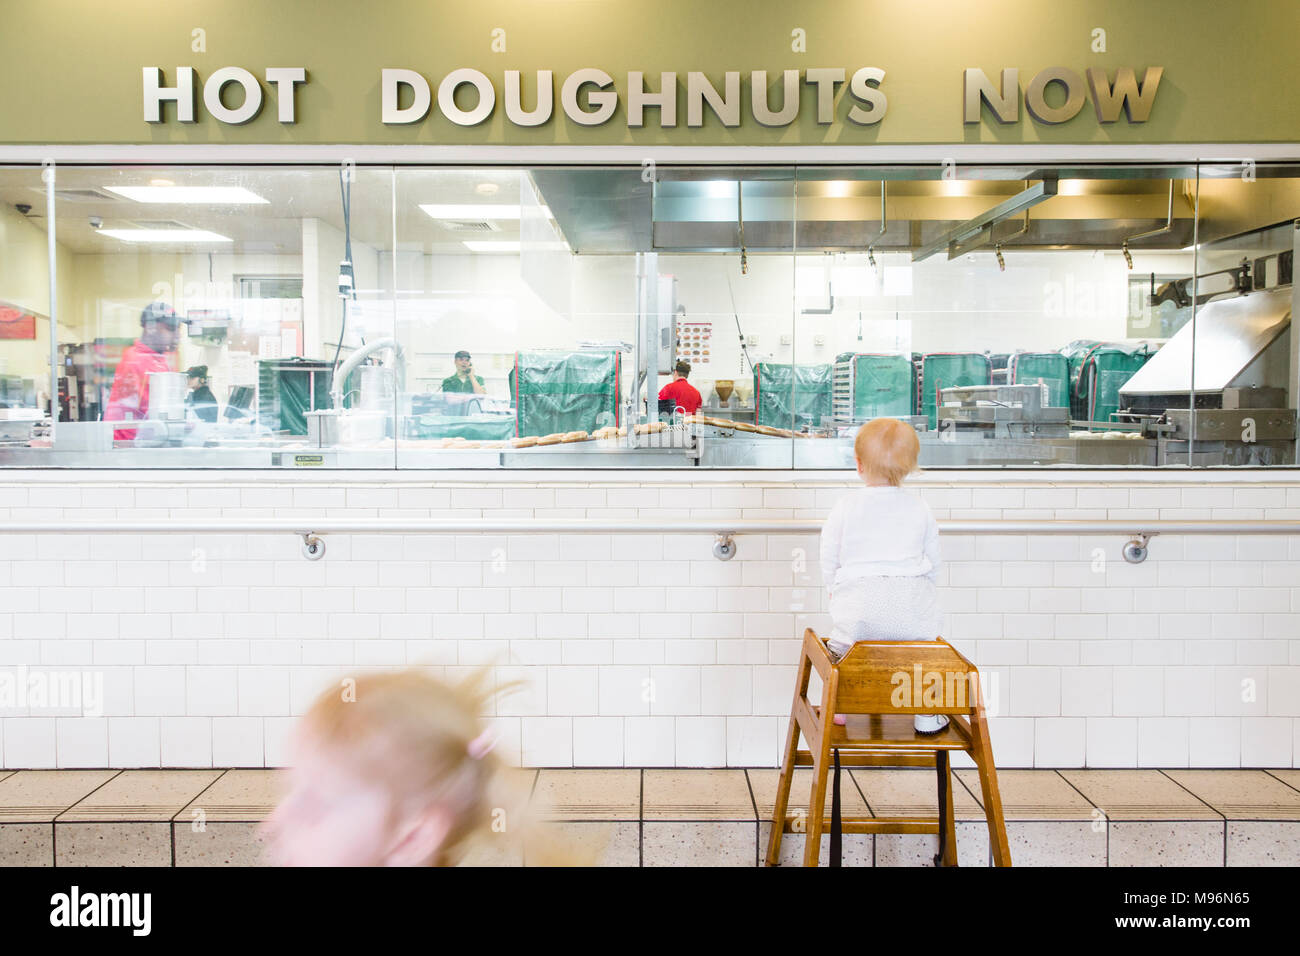 Children looking at doughnuts being prepared - Stock Image